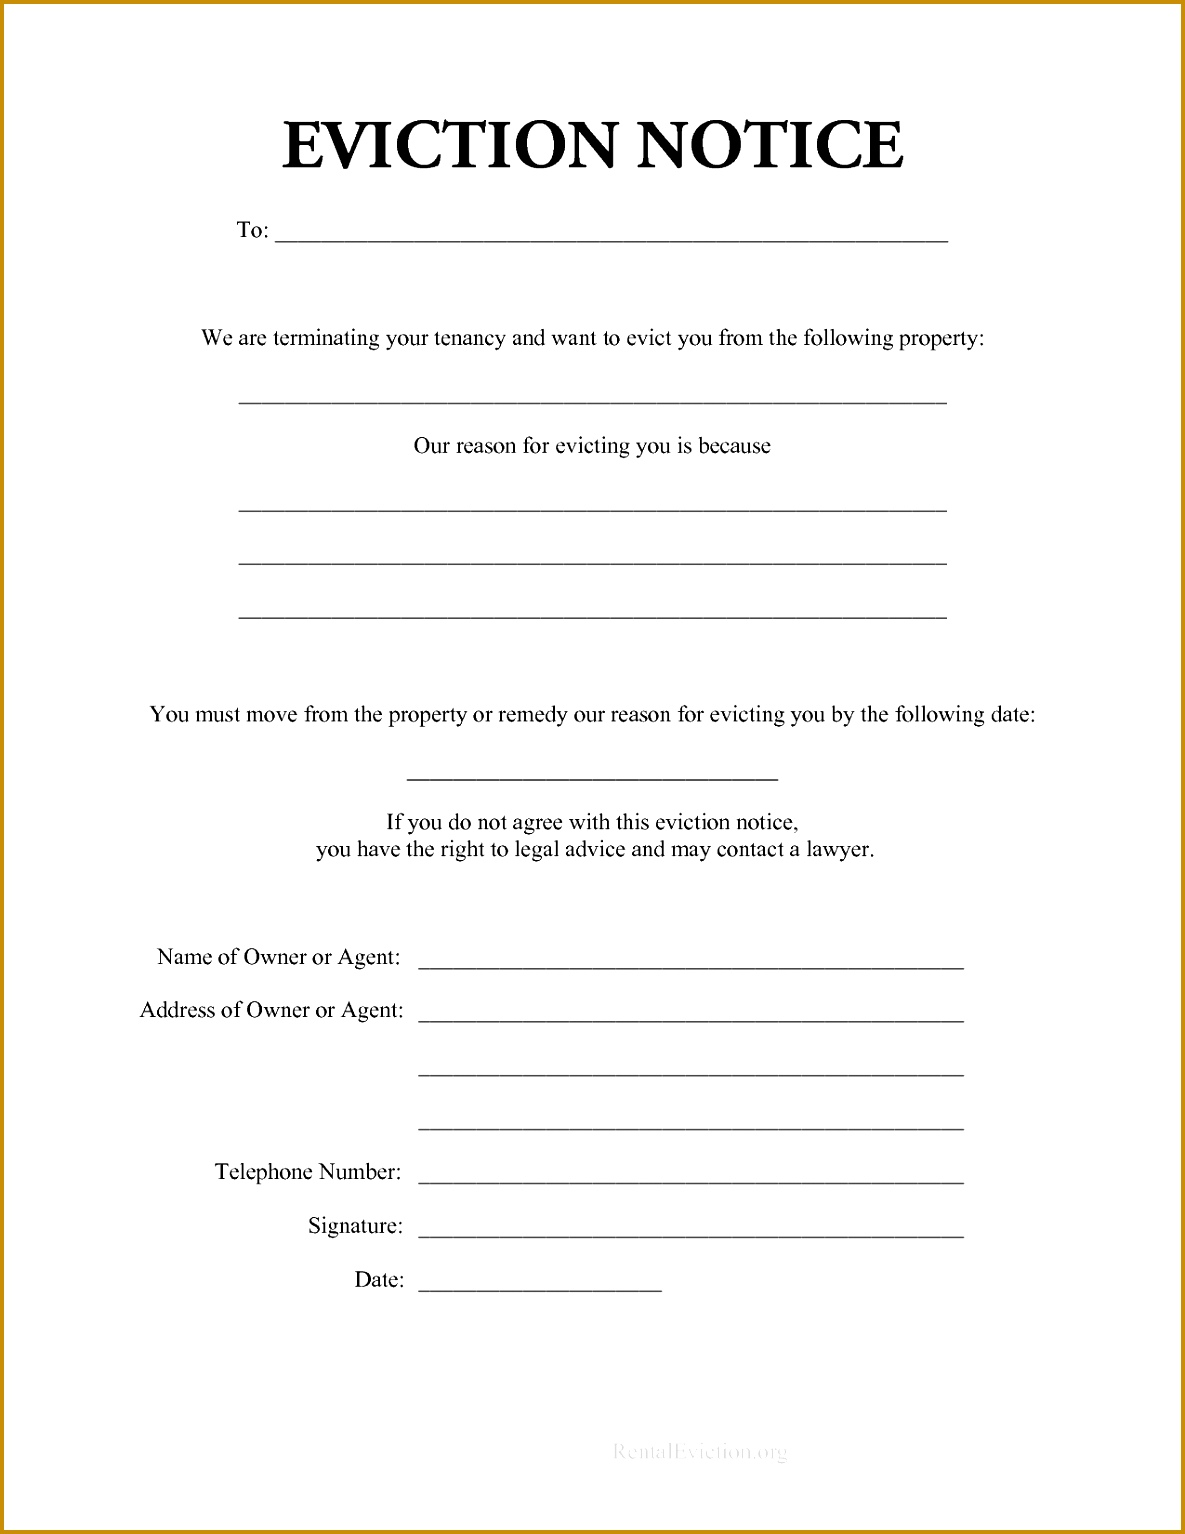 Free Print Out Eviction Notices 15341185